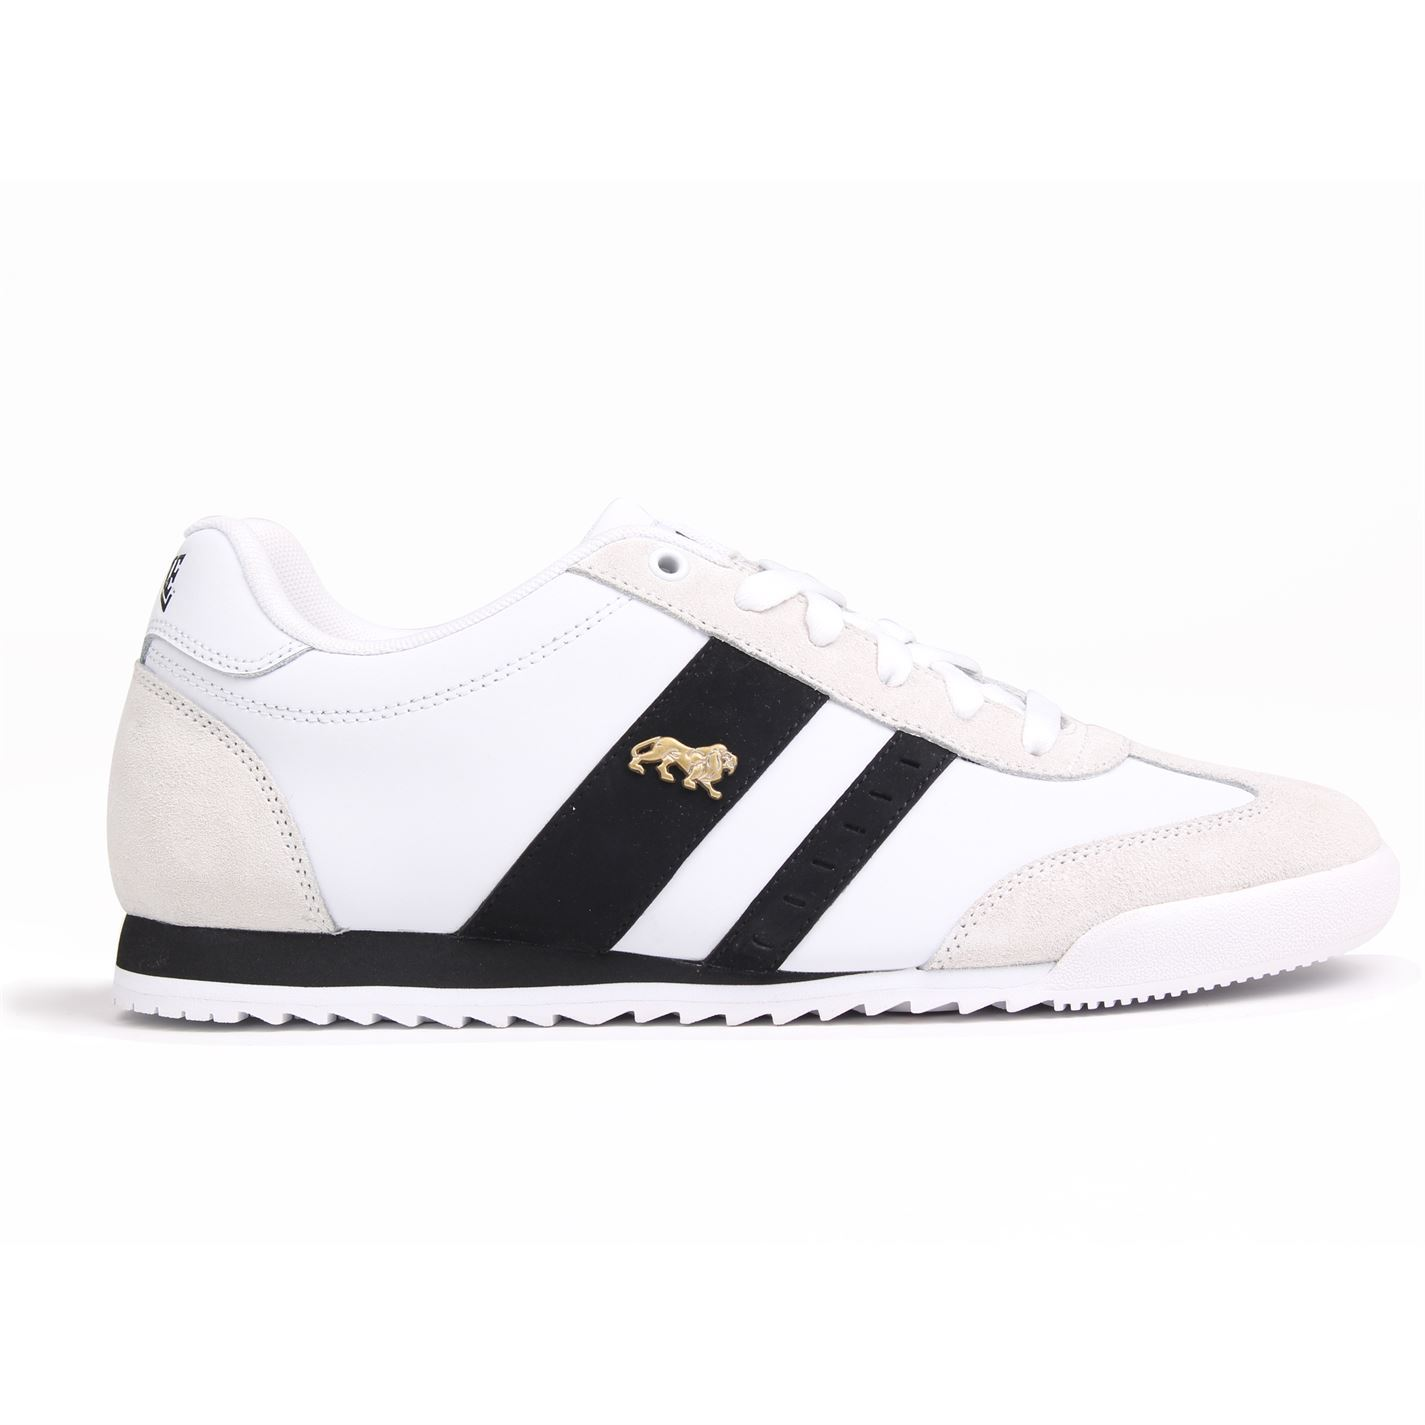 5ea41746f Details about Lonsdale Mens Lambo Trainers Sneakers Low Top Lace Up Padded  Sports Shoes